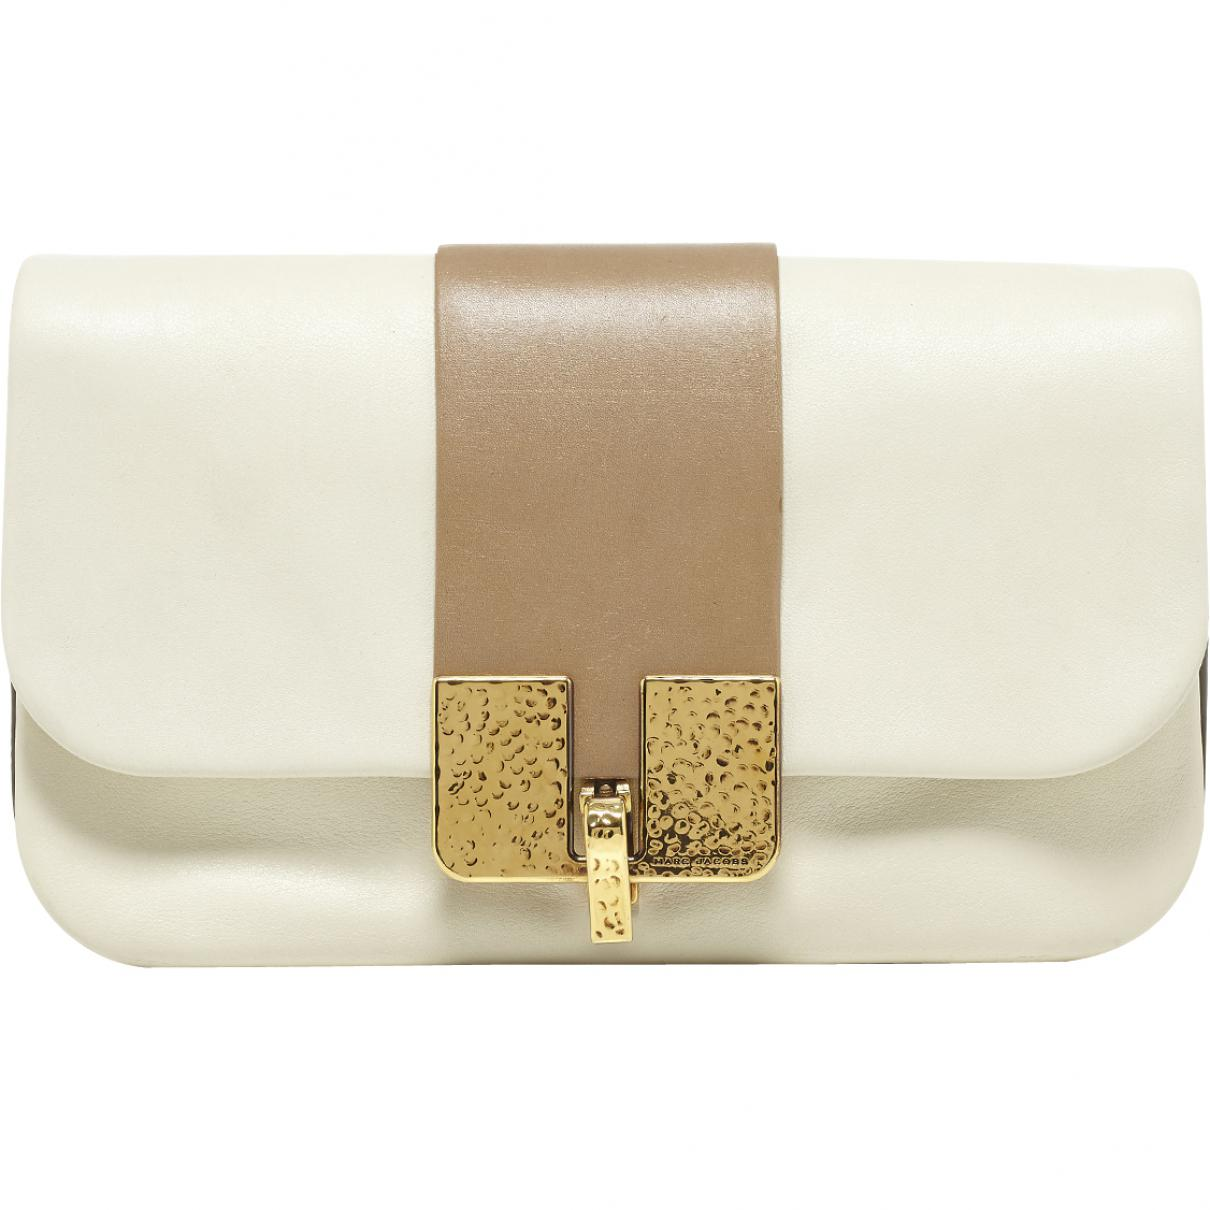 Marc Jacobs Pre-owned - Leather clutch bag d0iuqAbrD